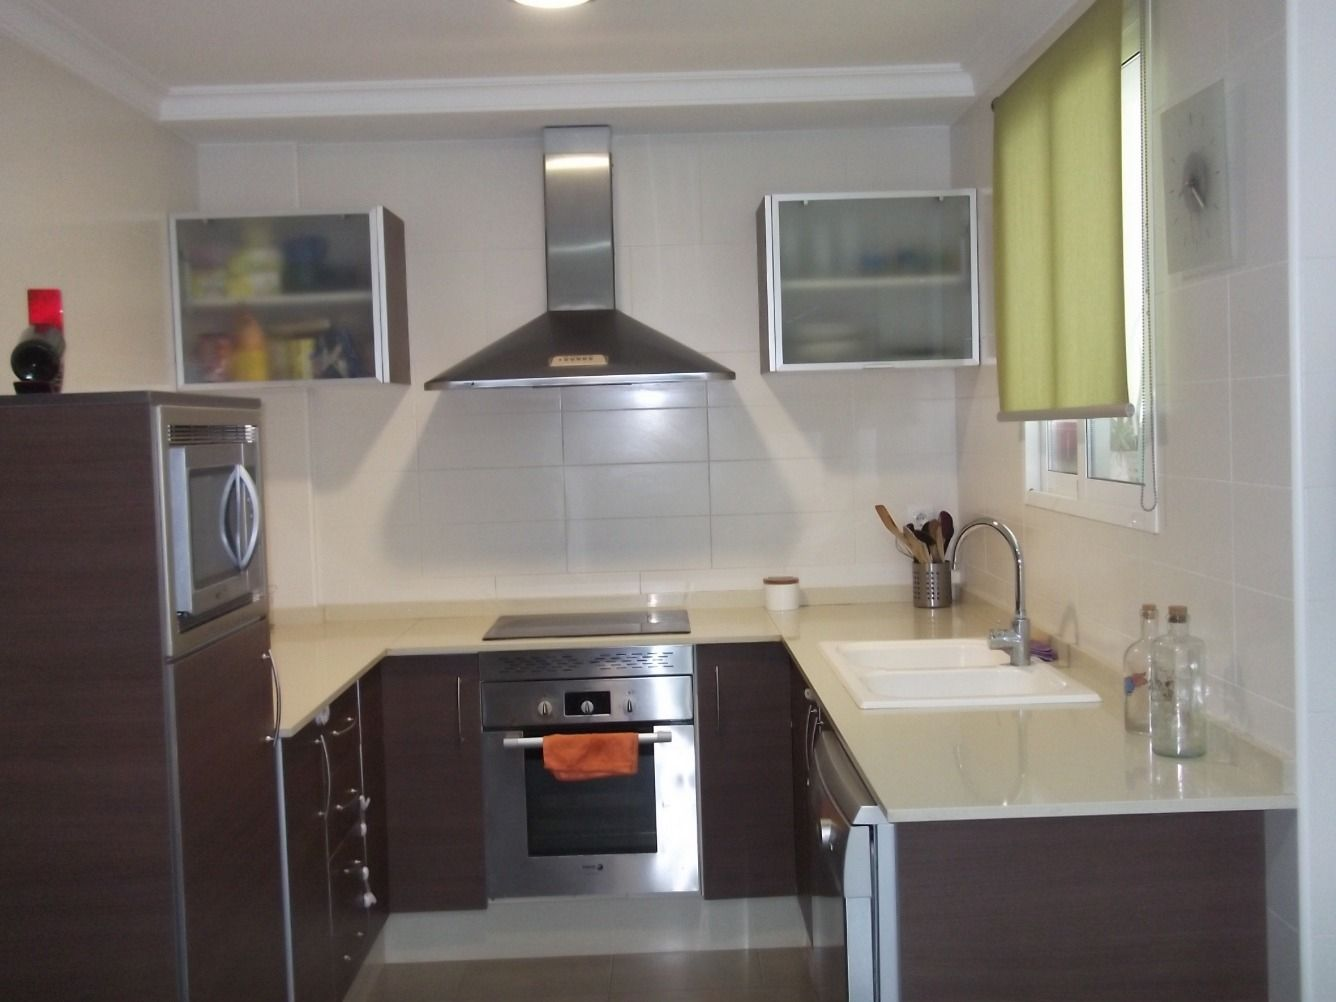 Semi detached house in Sollana. Excelente adosado en venta en sollana